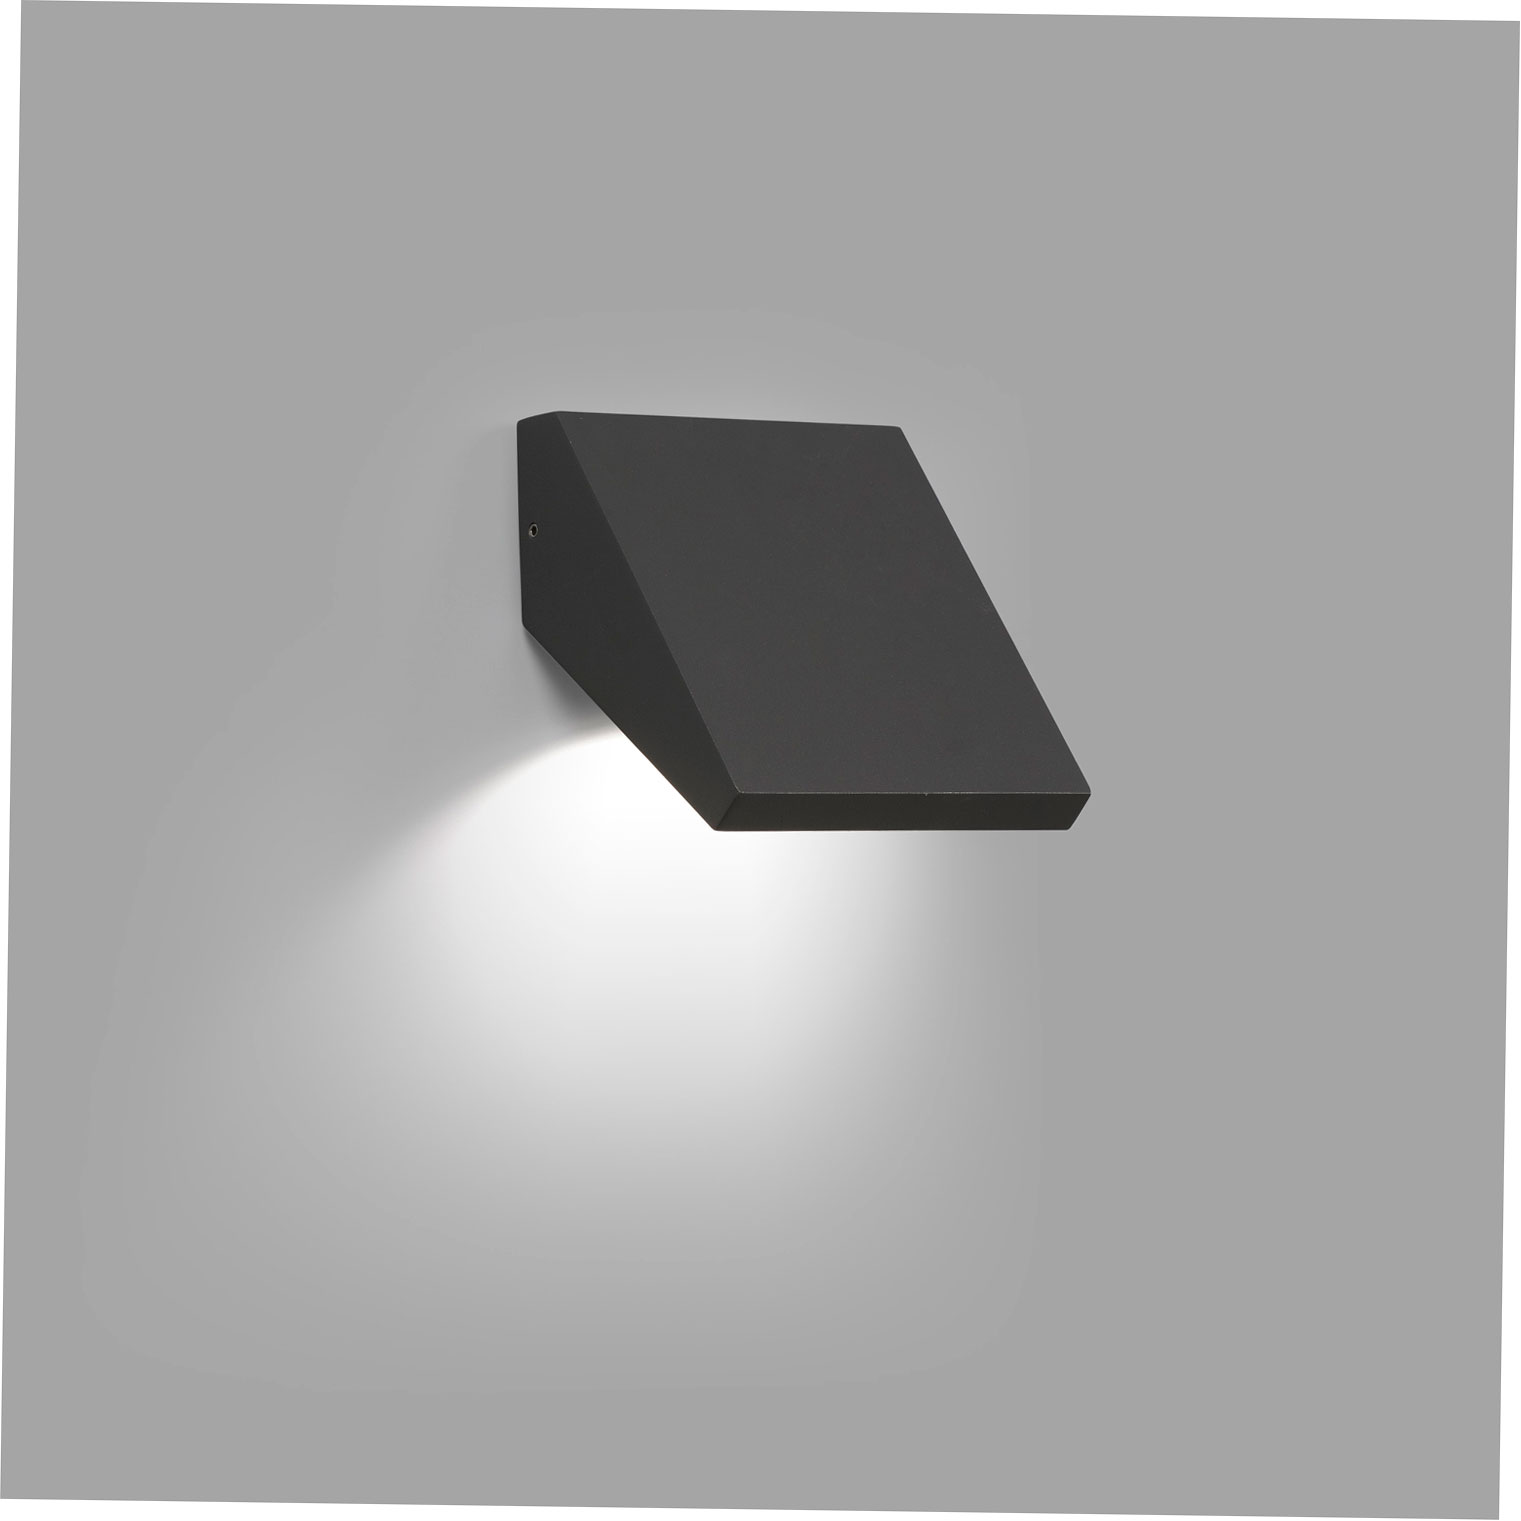 GUIZA WALL LAMP DARK GREY LED 10W 3000K